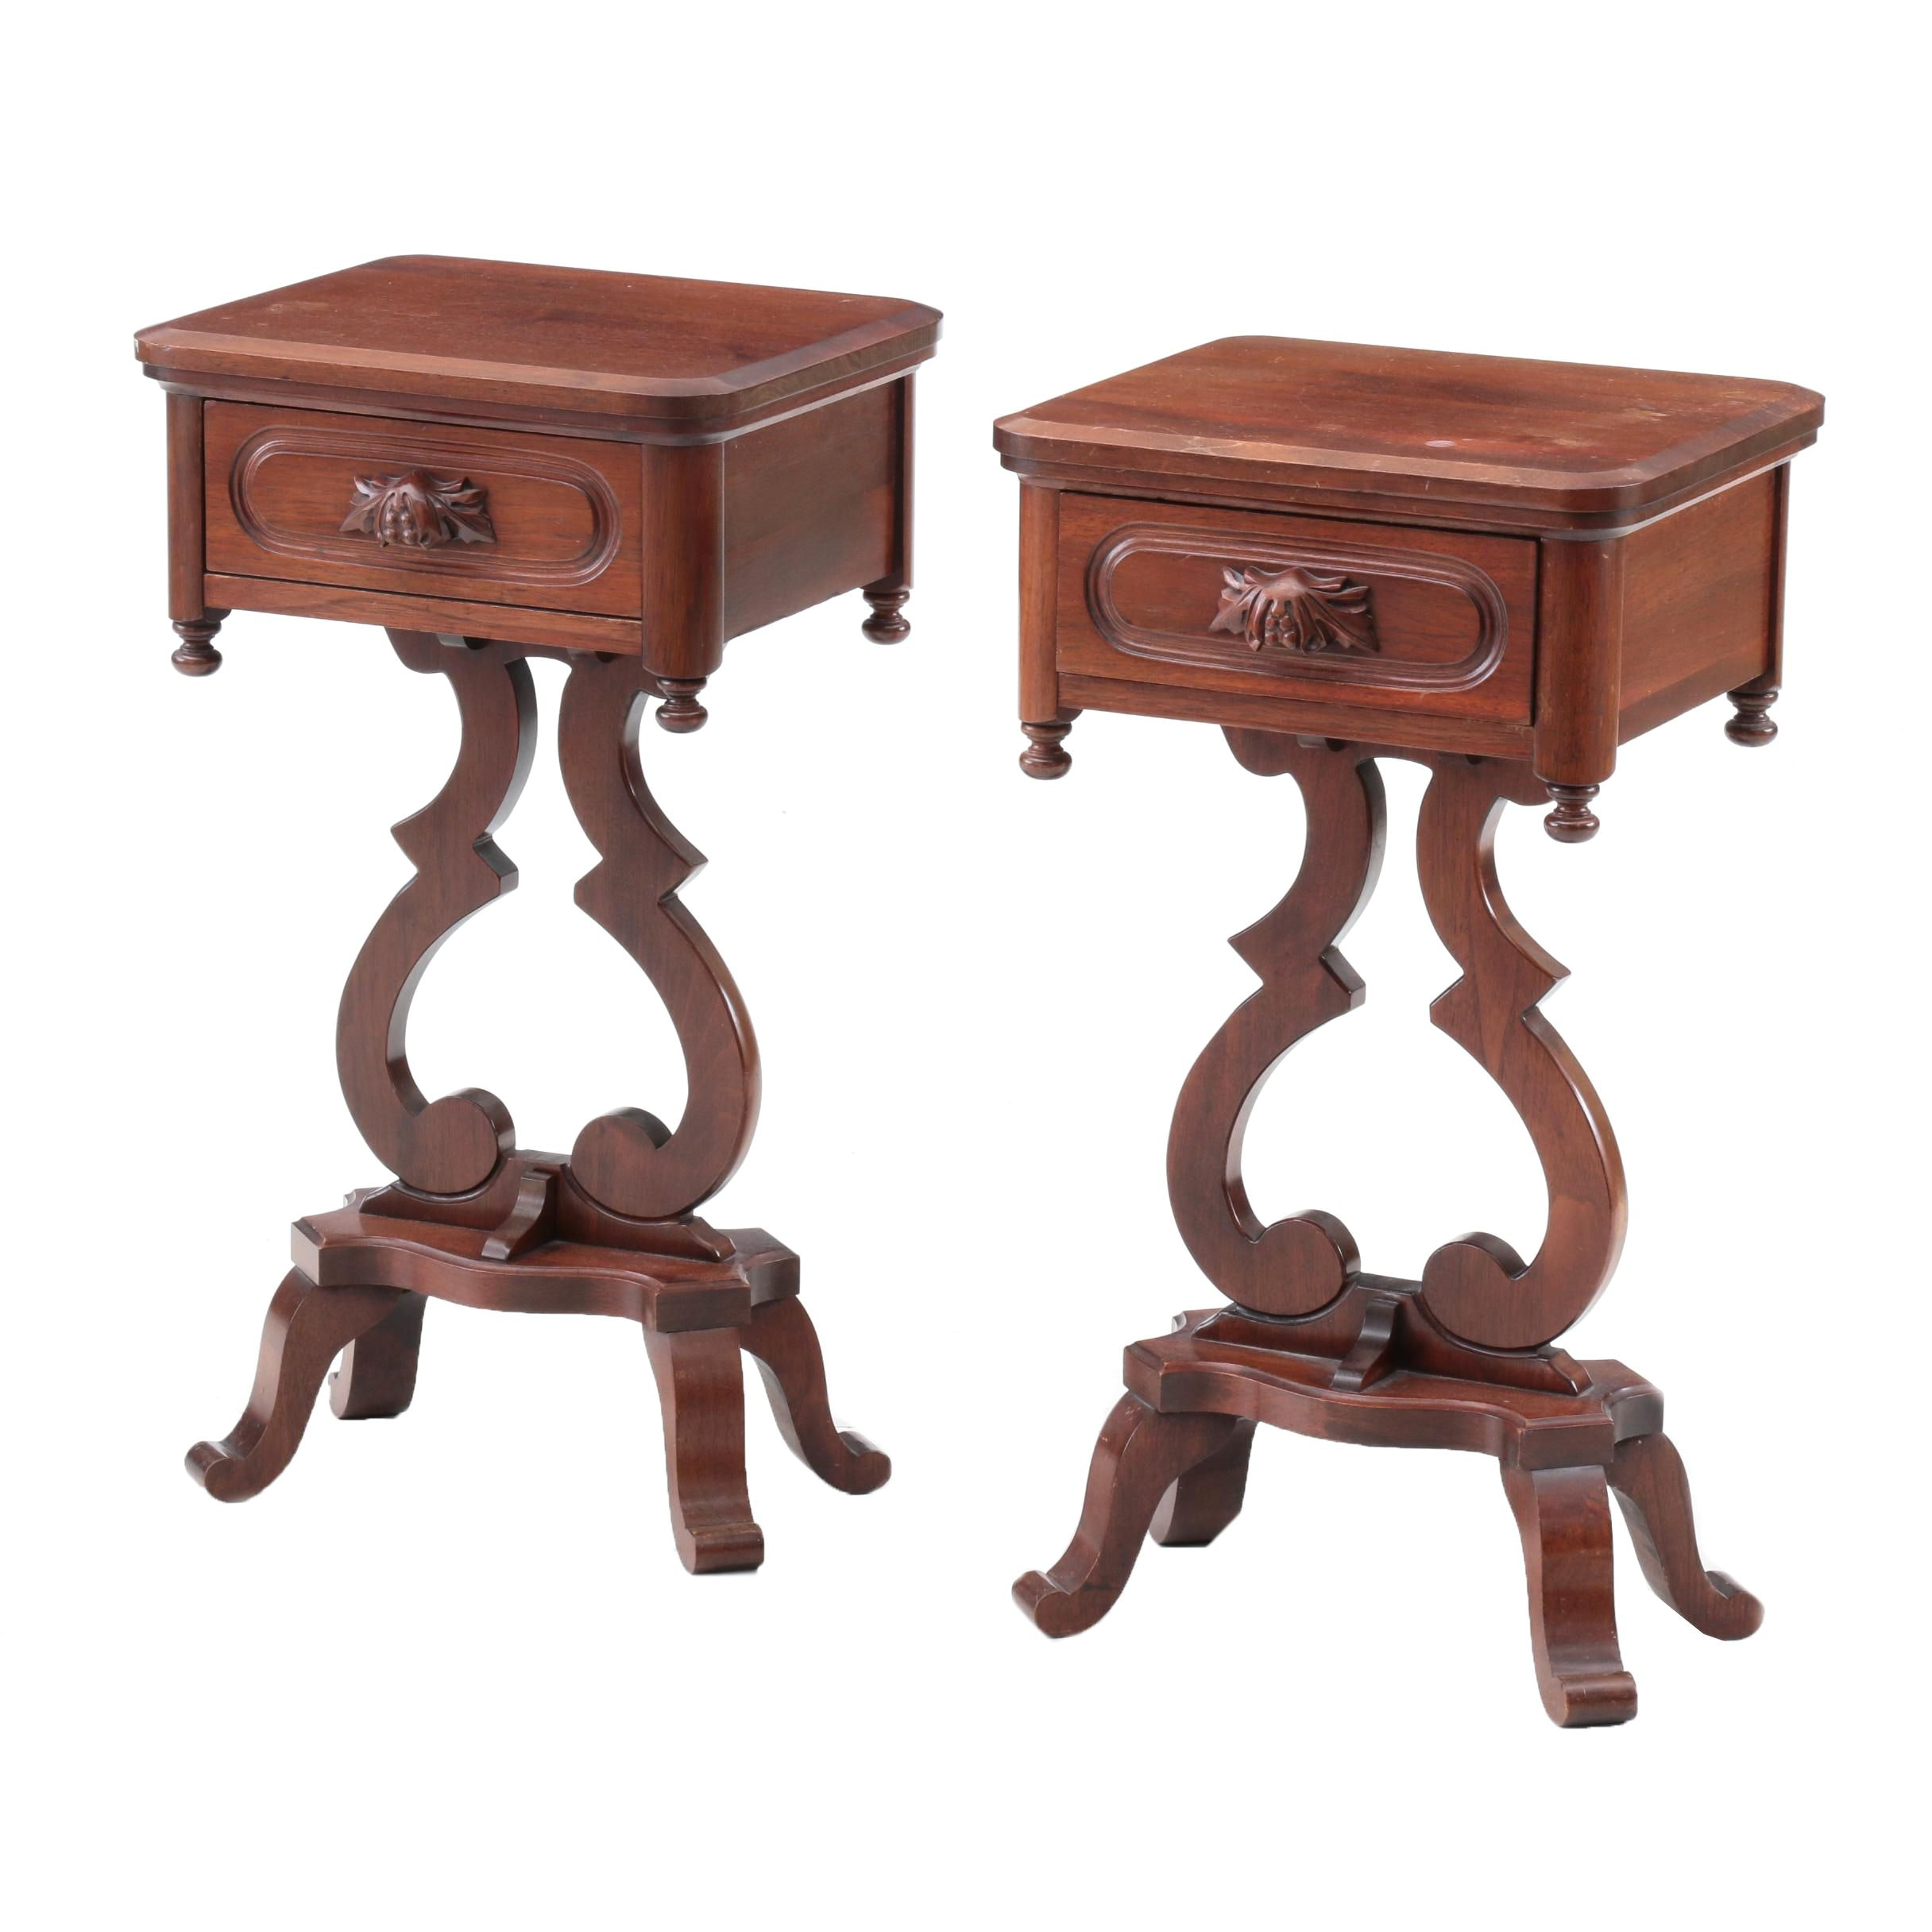 Victorian Style Accent Tables in Walnut